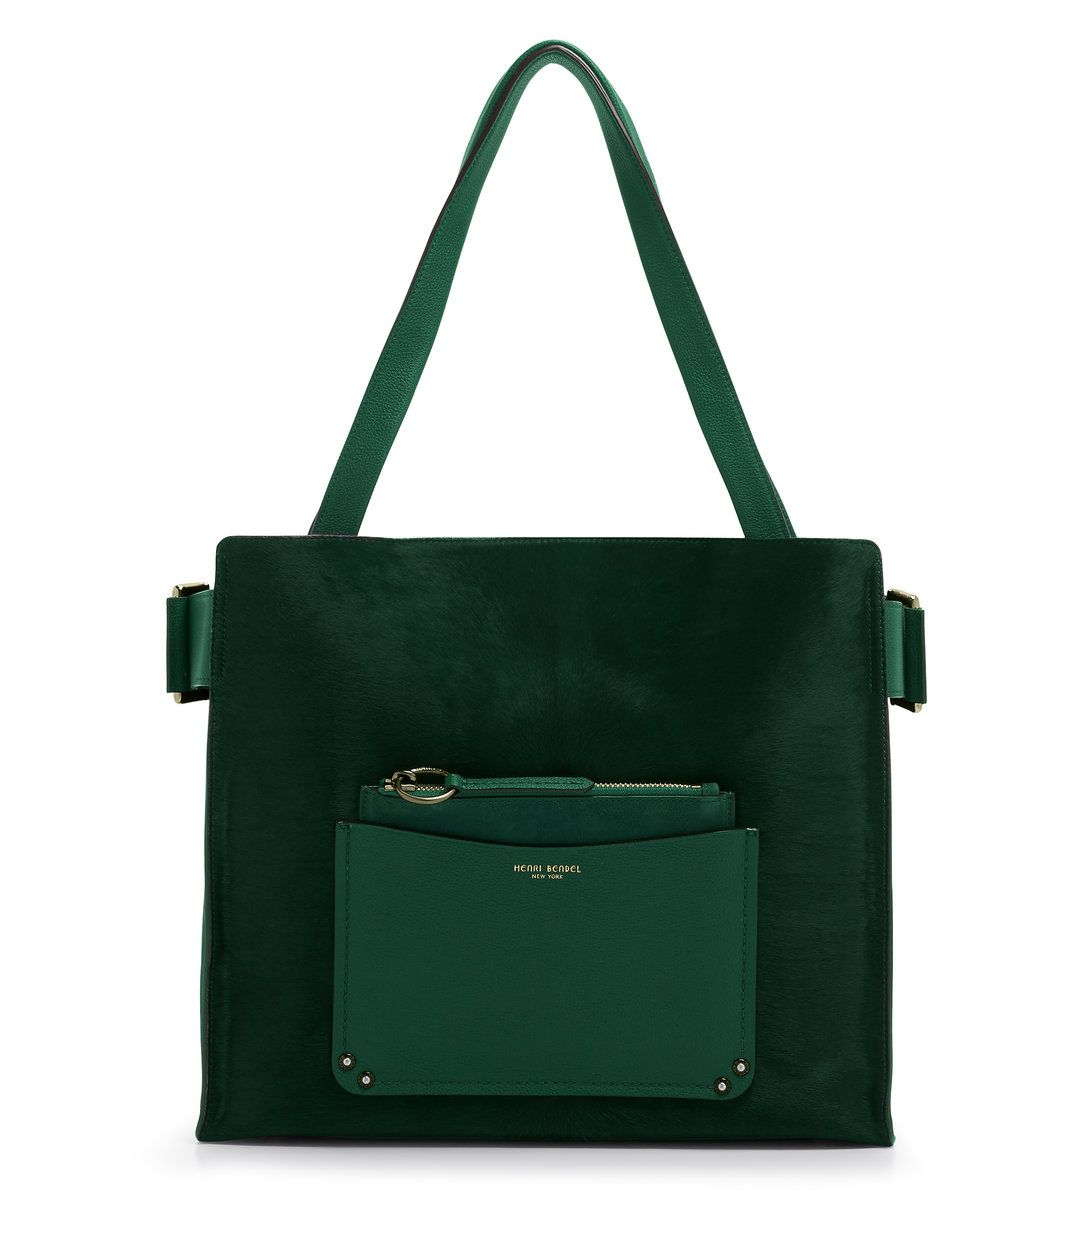 0271d18e41a7 Crafted from pebbled leather with haircalf detailing, you'll want to sling  this luxe emerald tote over your shoulder every chance you get, Bendel Girl.